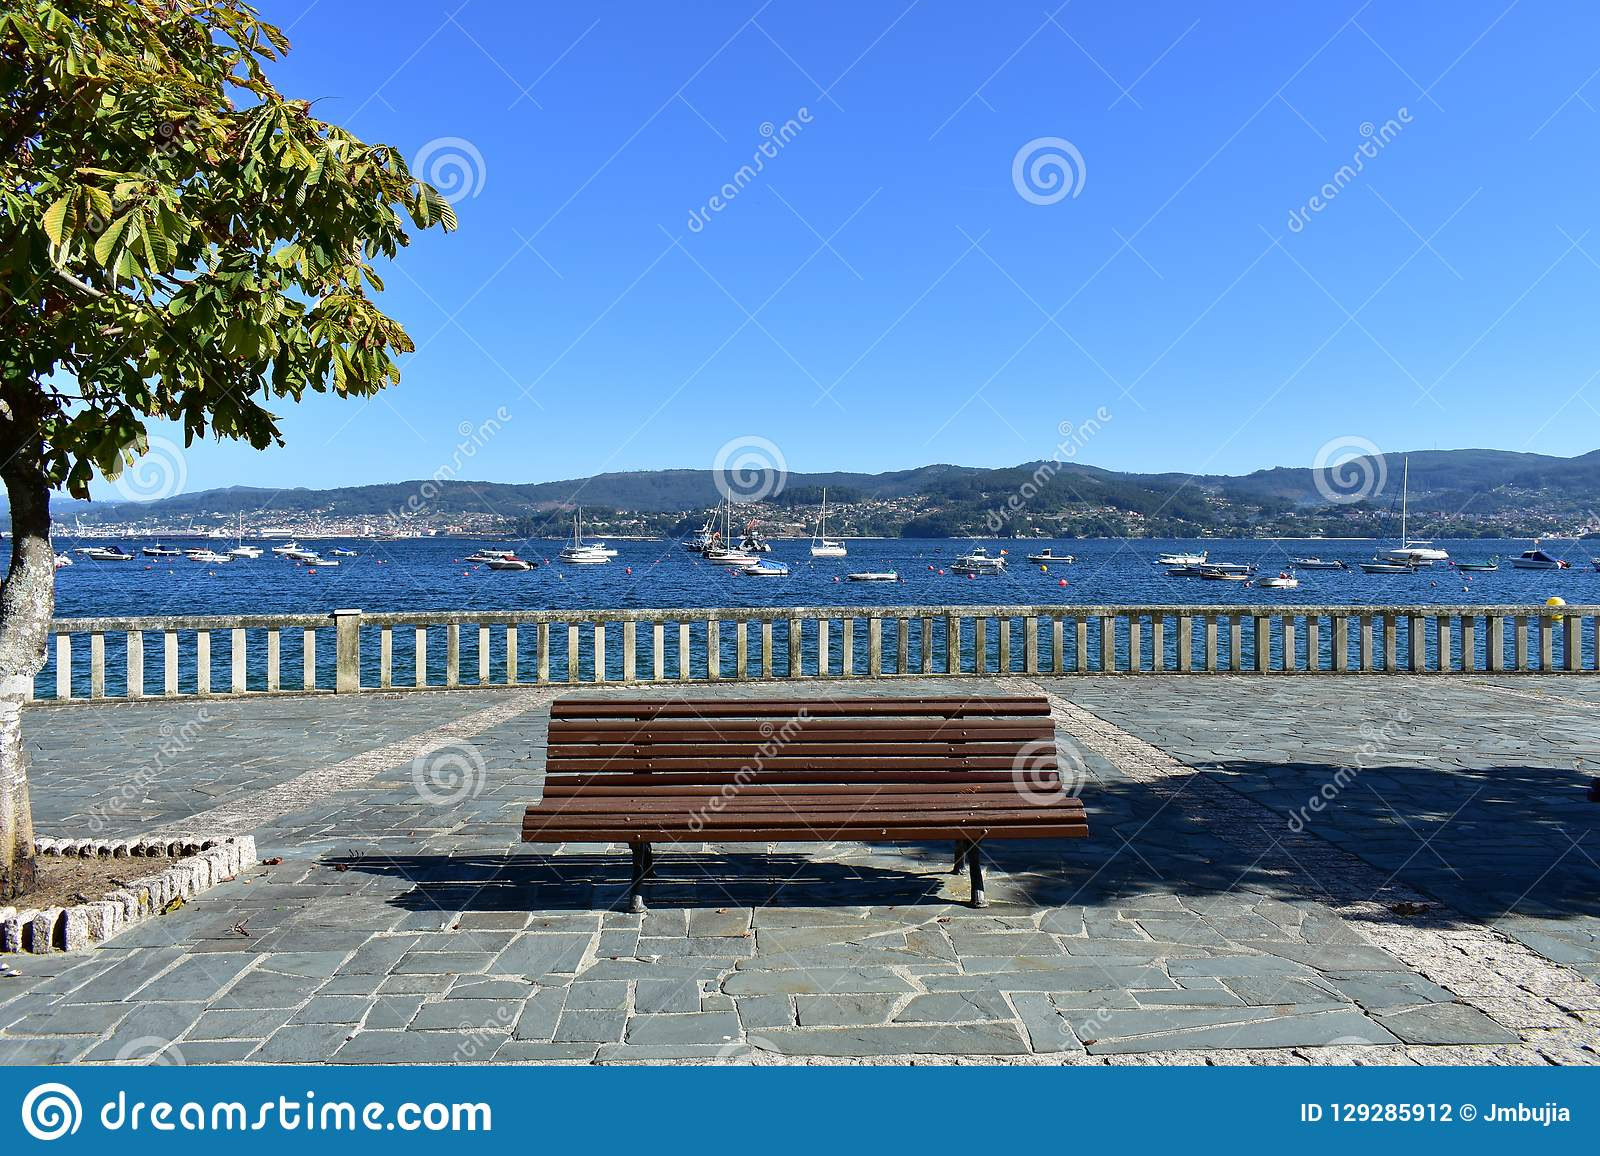 Bench, tree and stone handrail in a beach promenade. Summer background. Bay with blue water, boats and trees. Galicia, Spain.